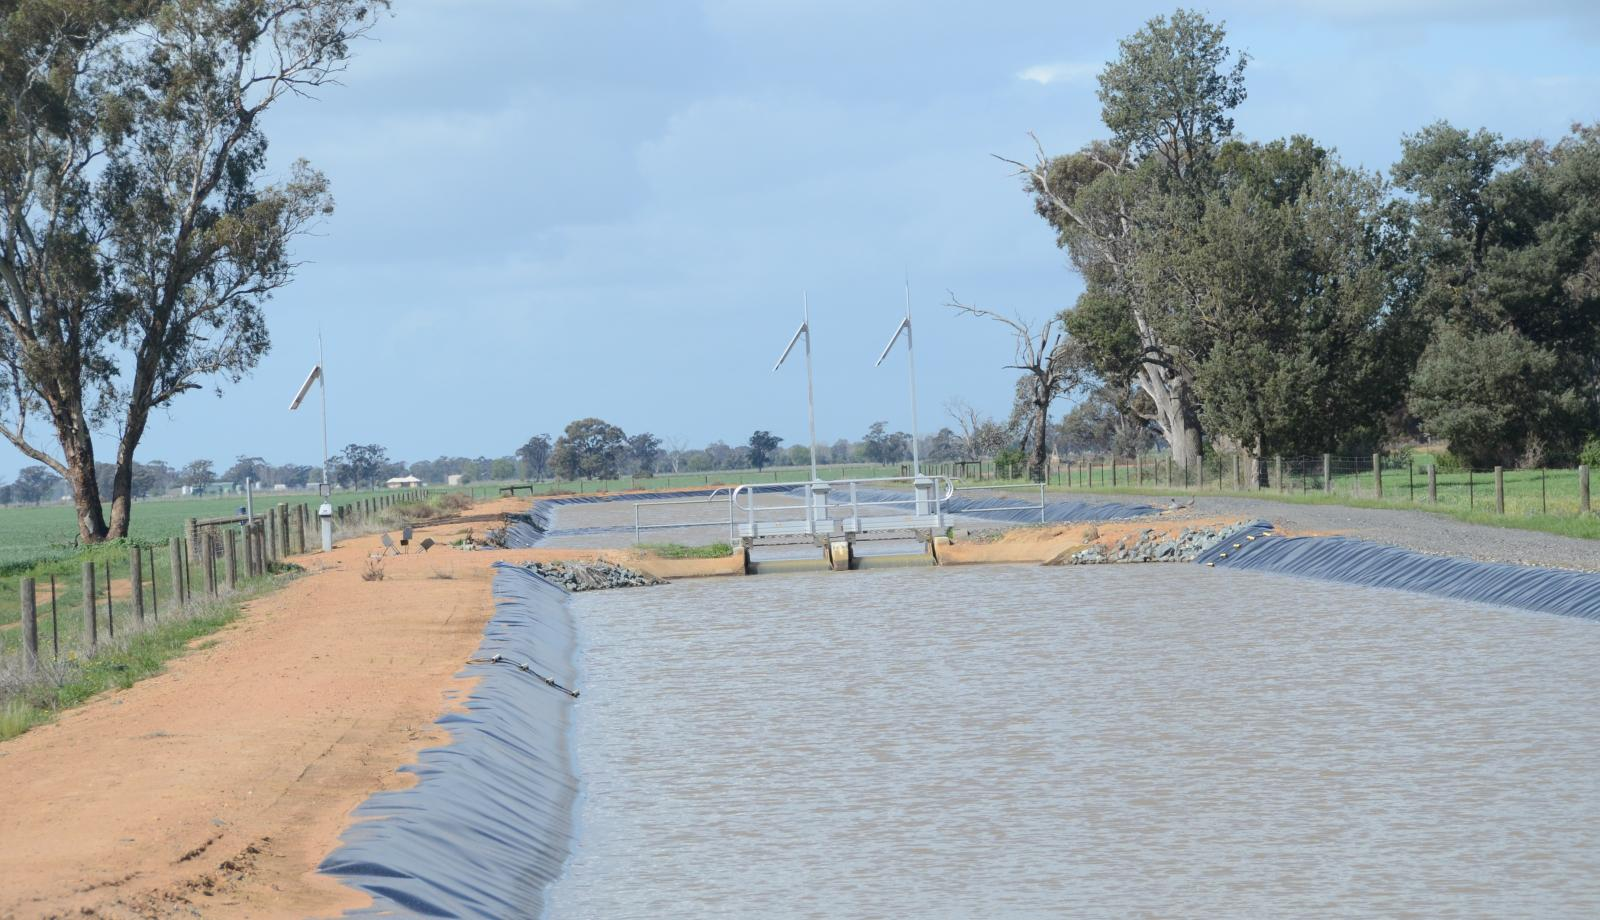 Plan's impacts assessed